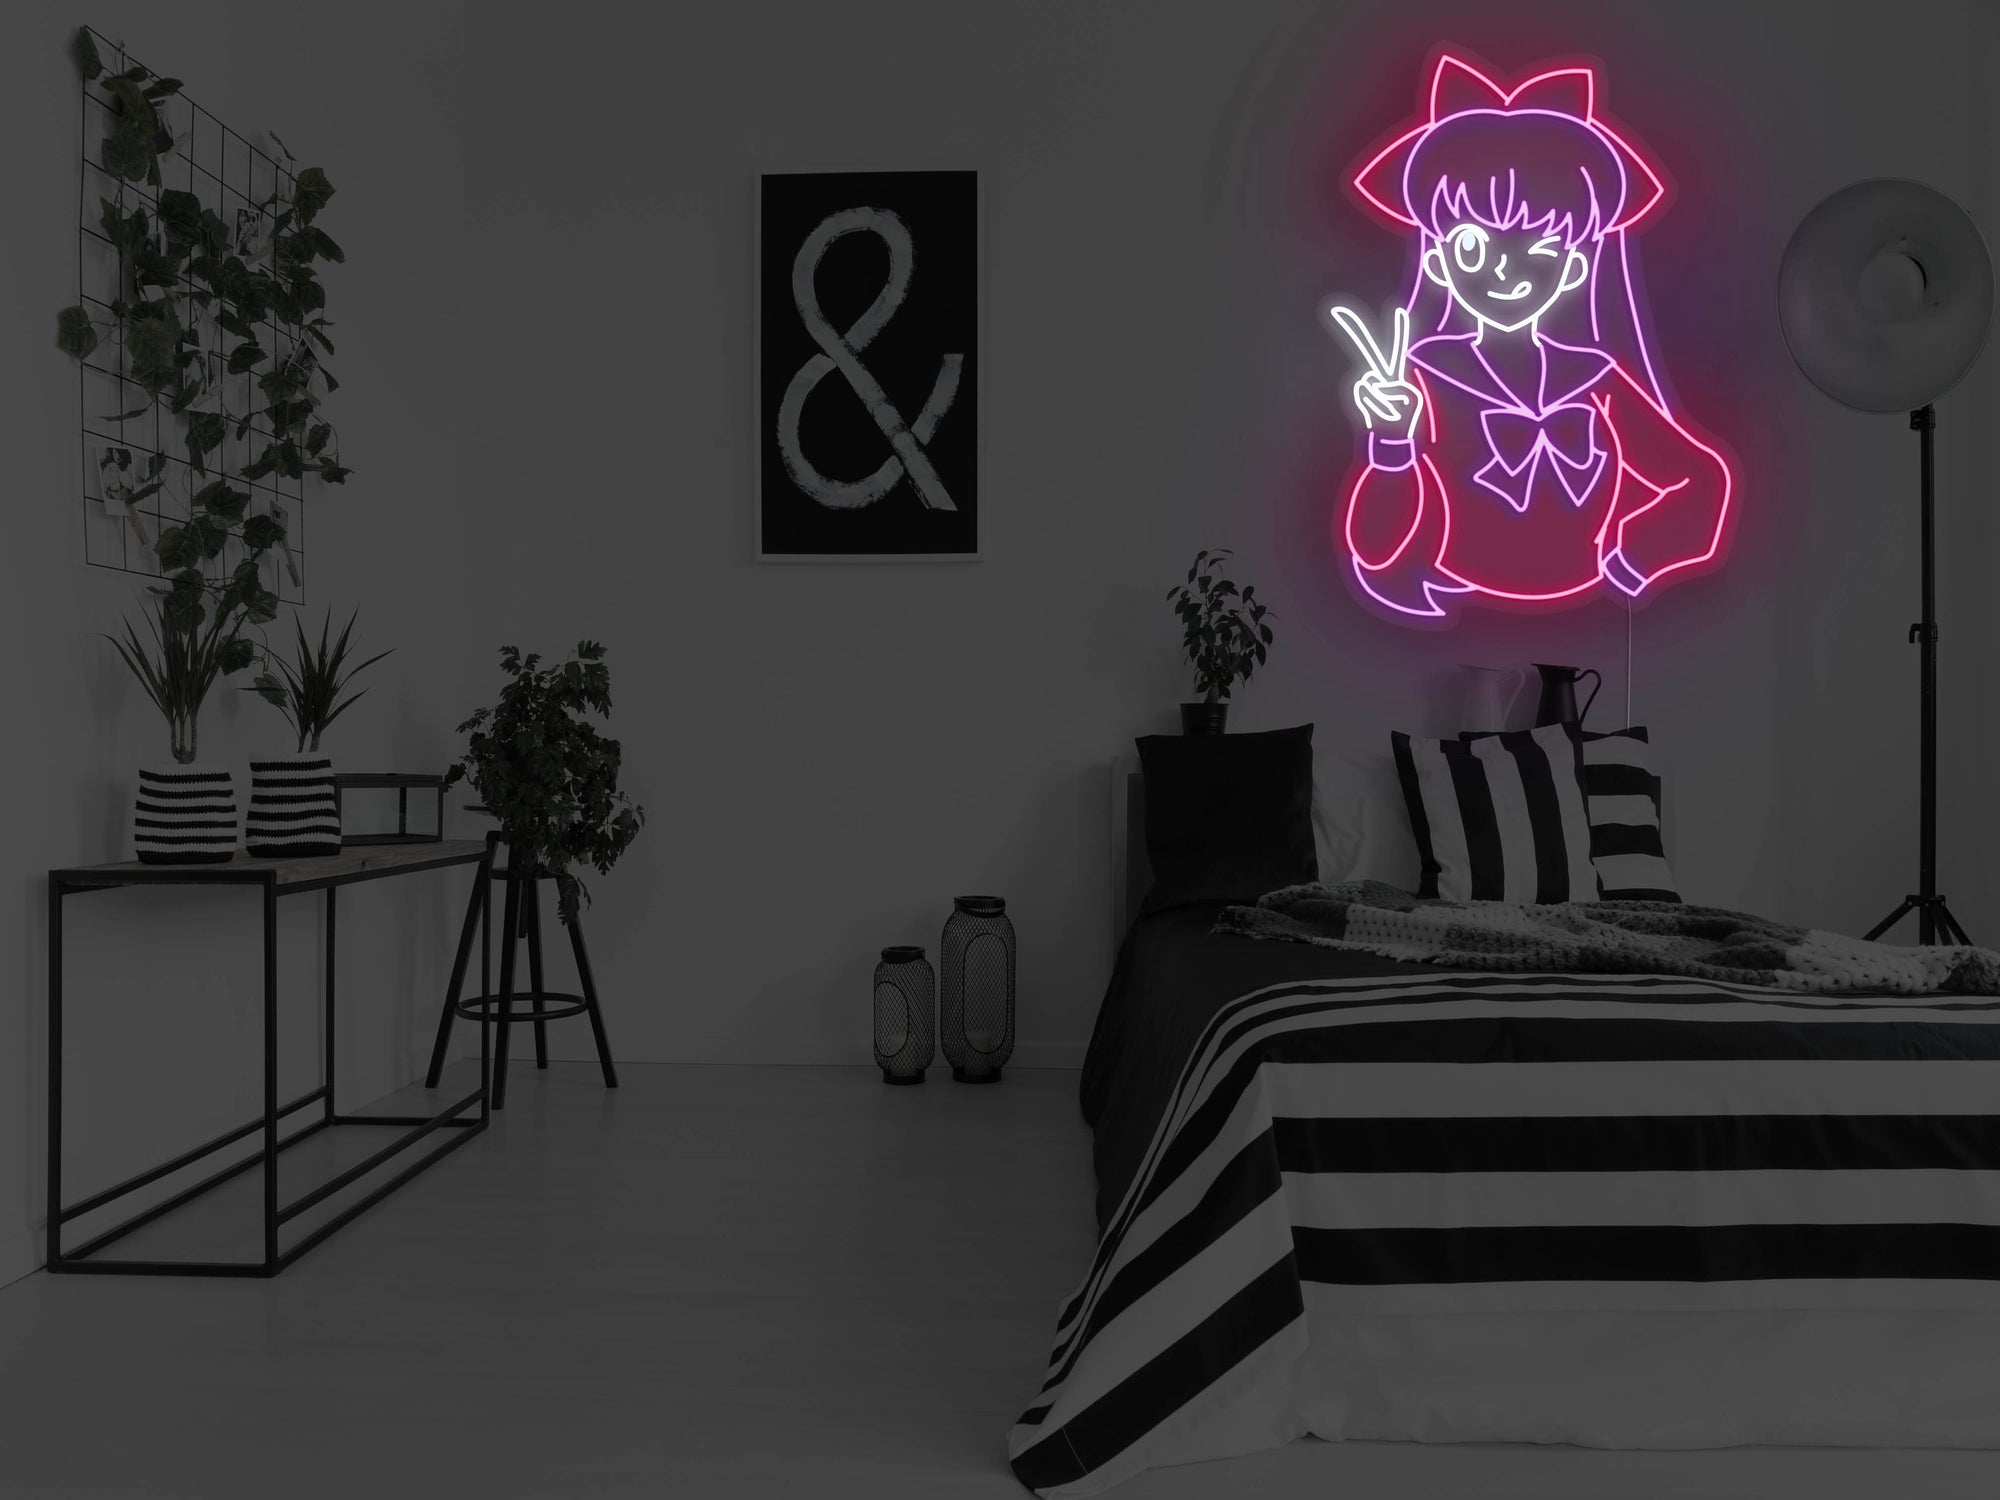 Anime Peace Girl LED Neon Sign